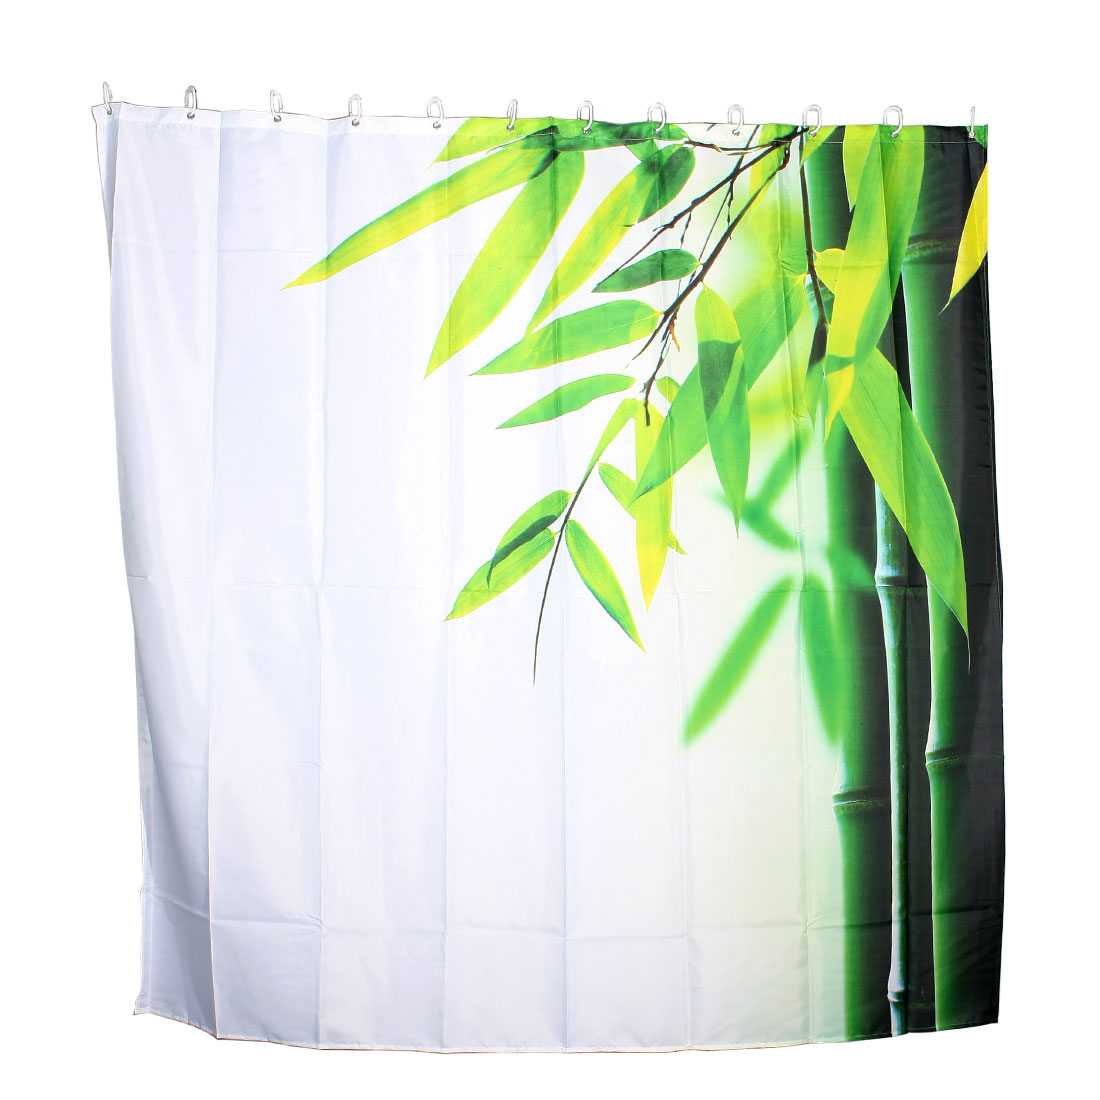 Bamboo Pattern Bathroom Ware Polyester Shower Curtain w 12 Ring Hooks 180x180cm